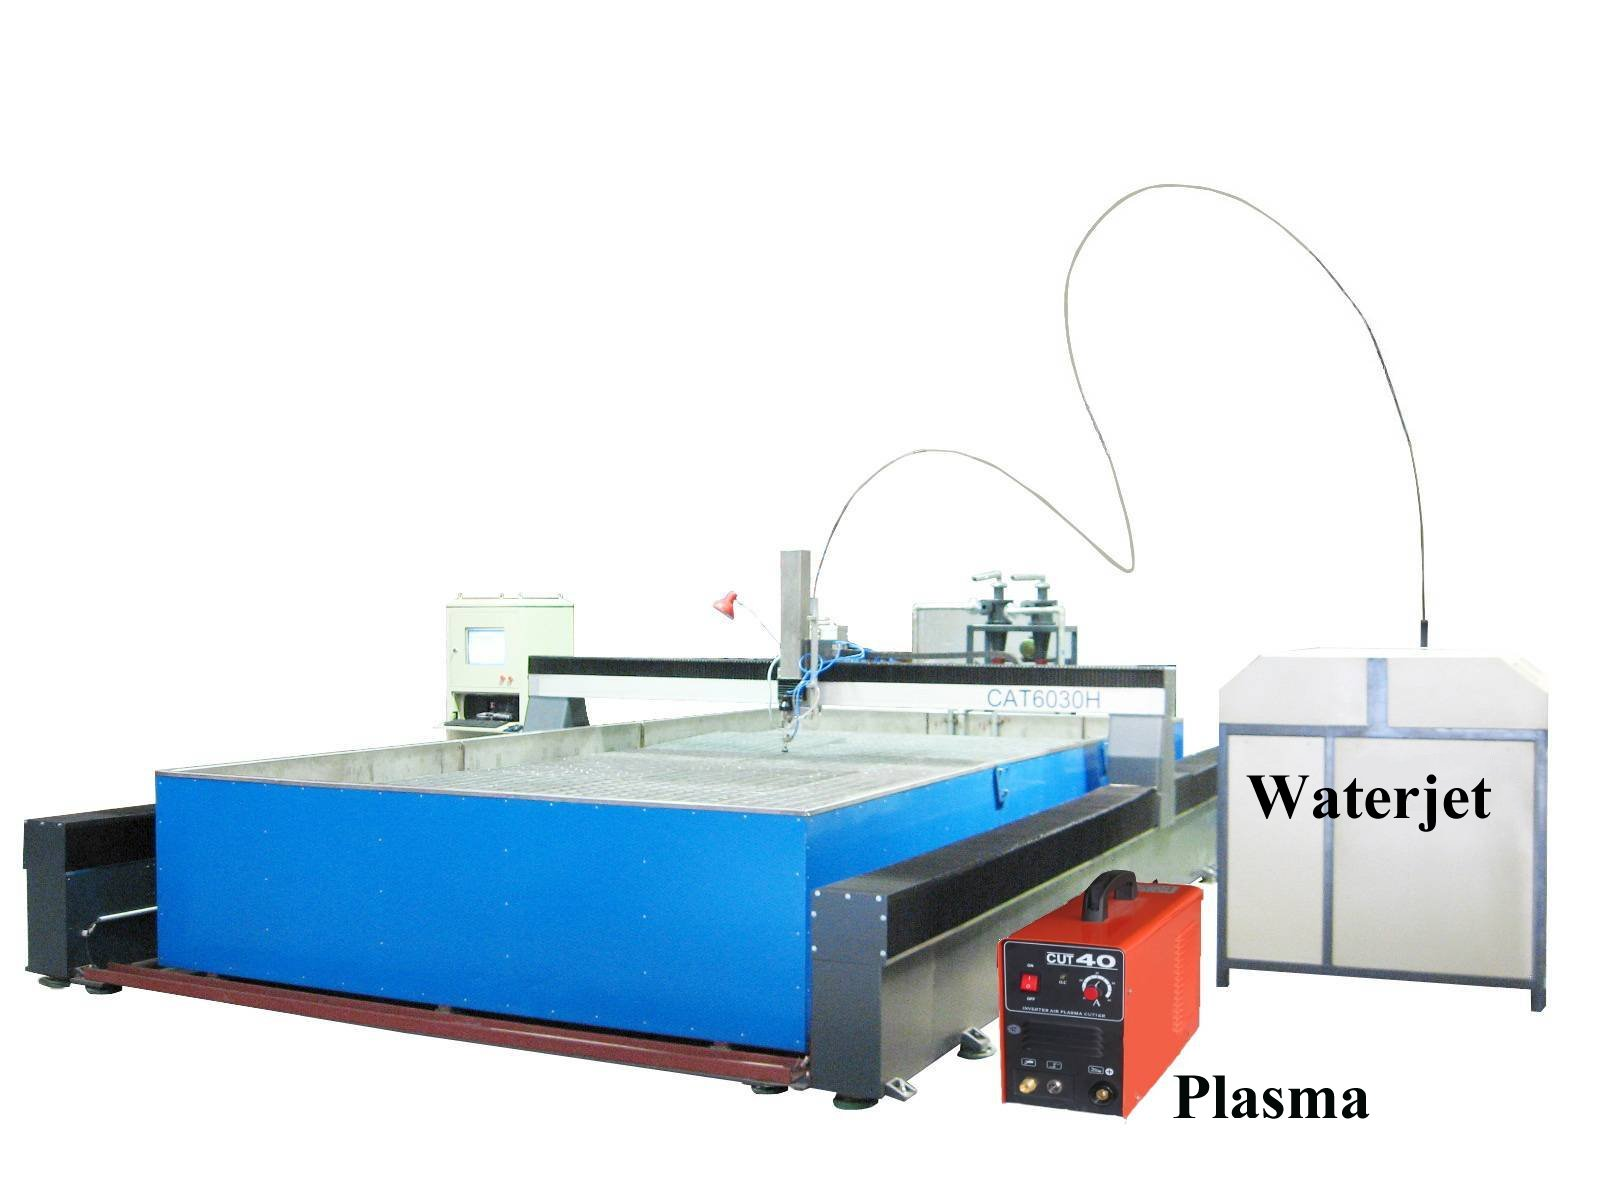 waterjet and plasma together